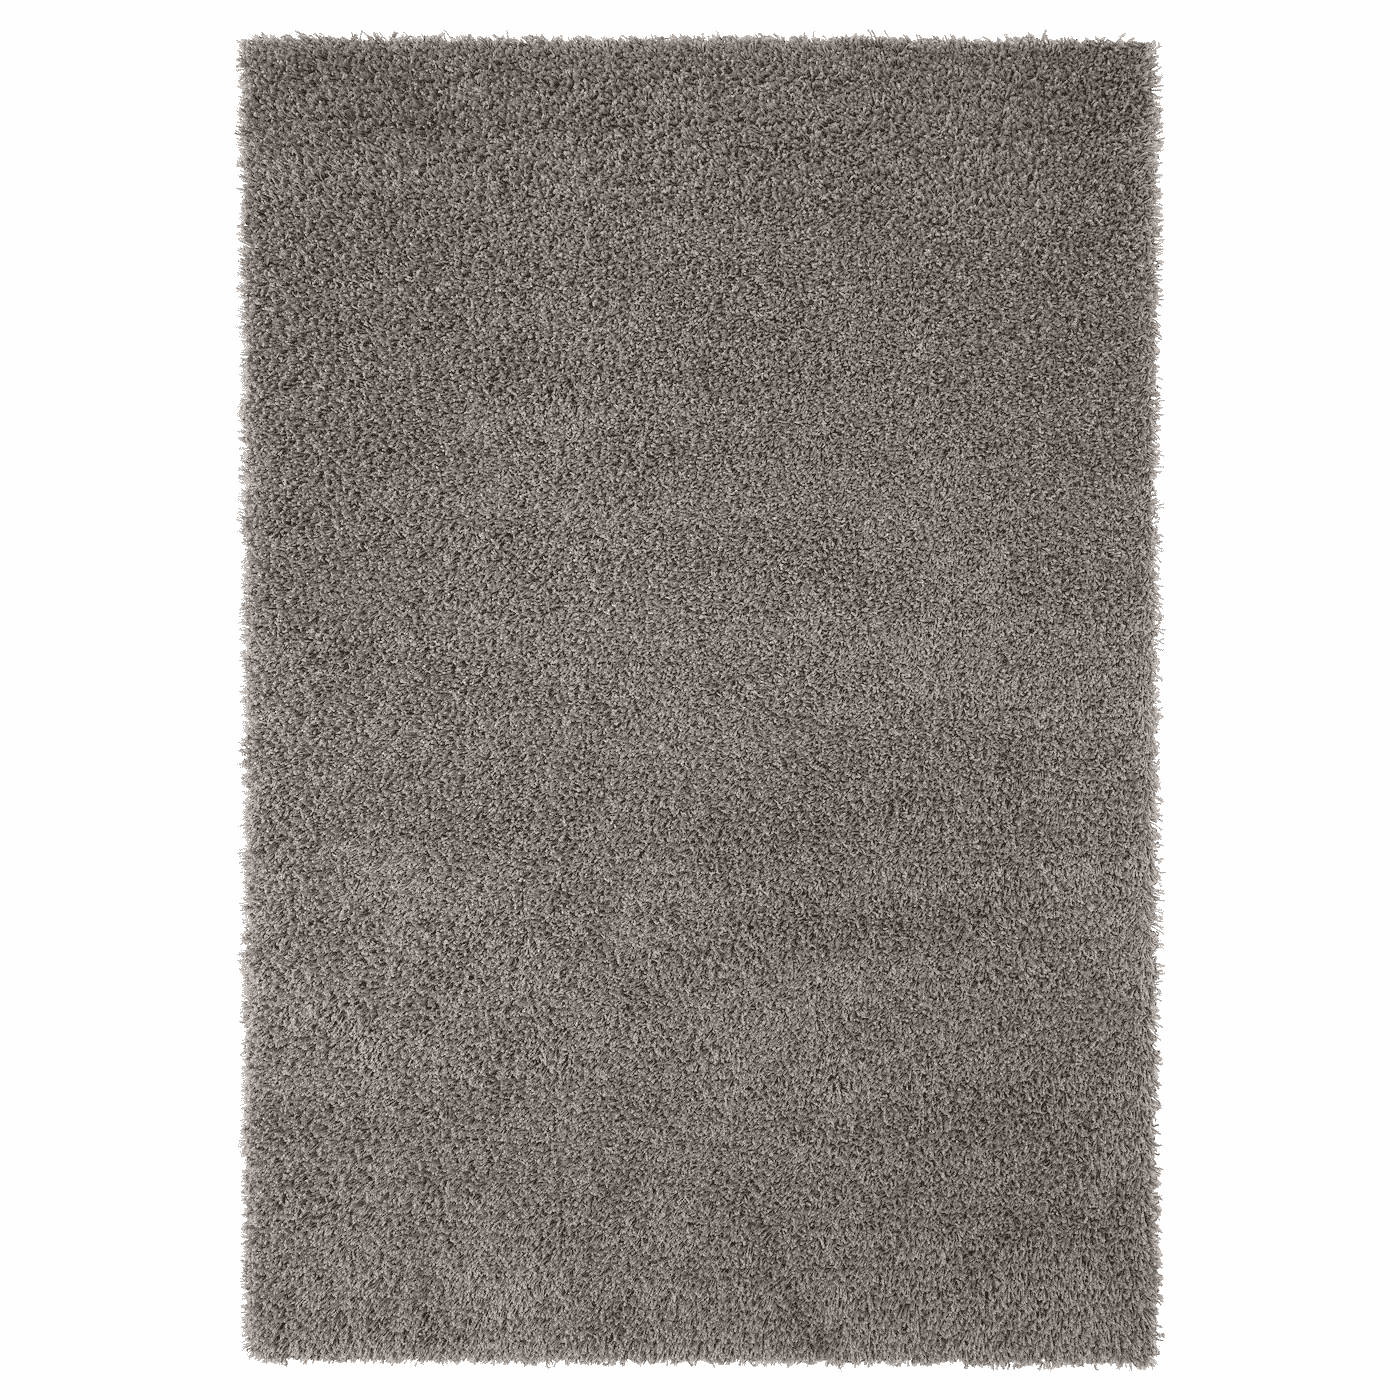 HAMPEN Rug, high pile, gray